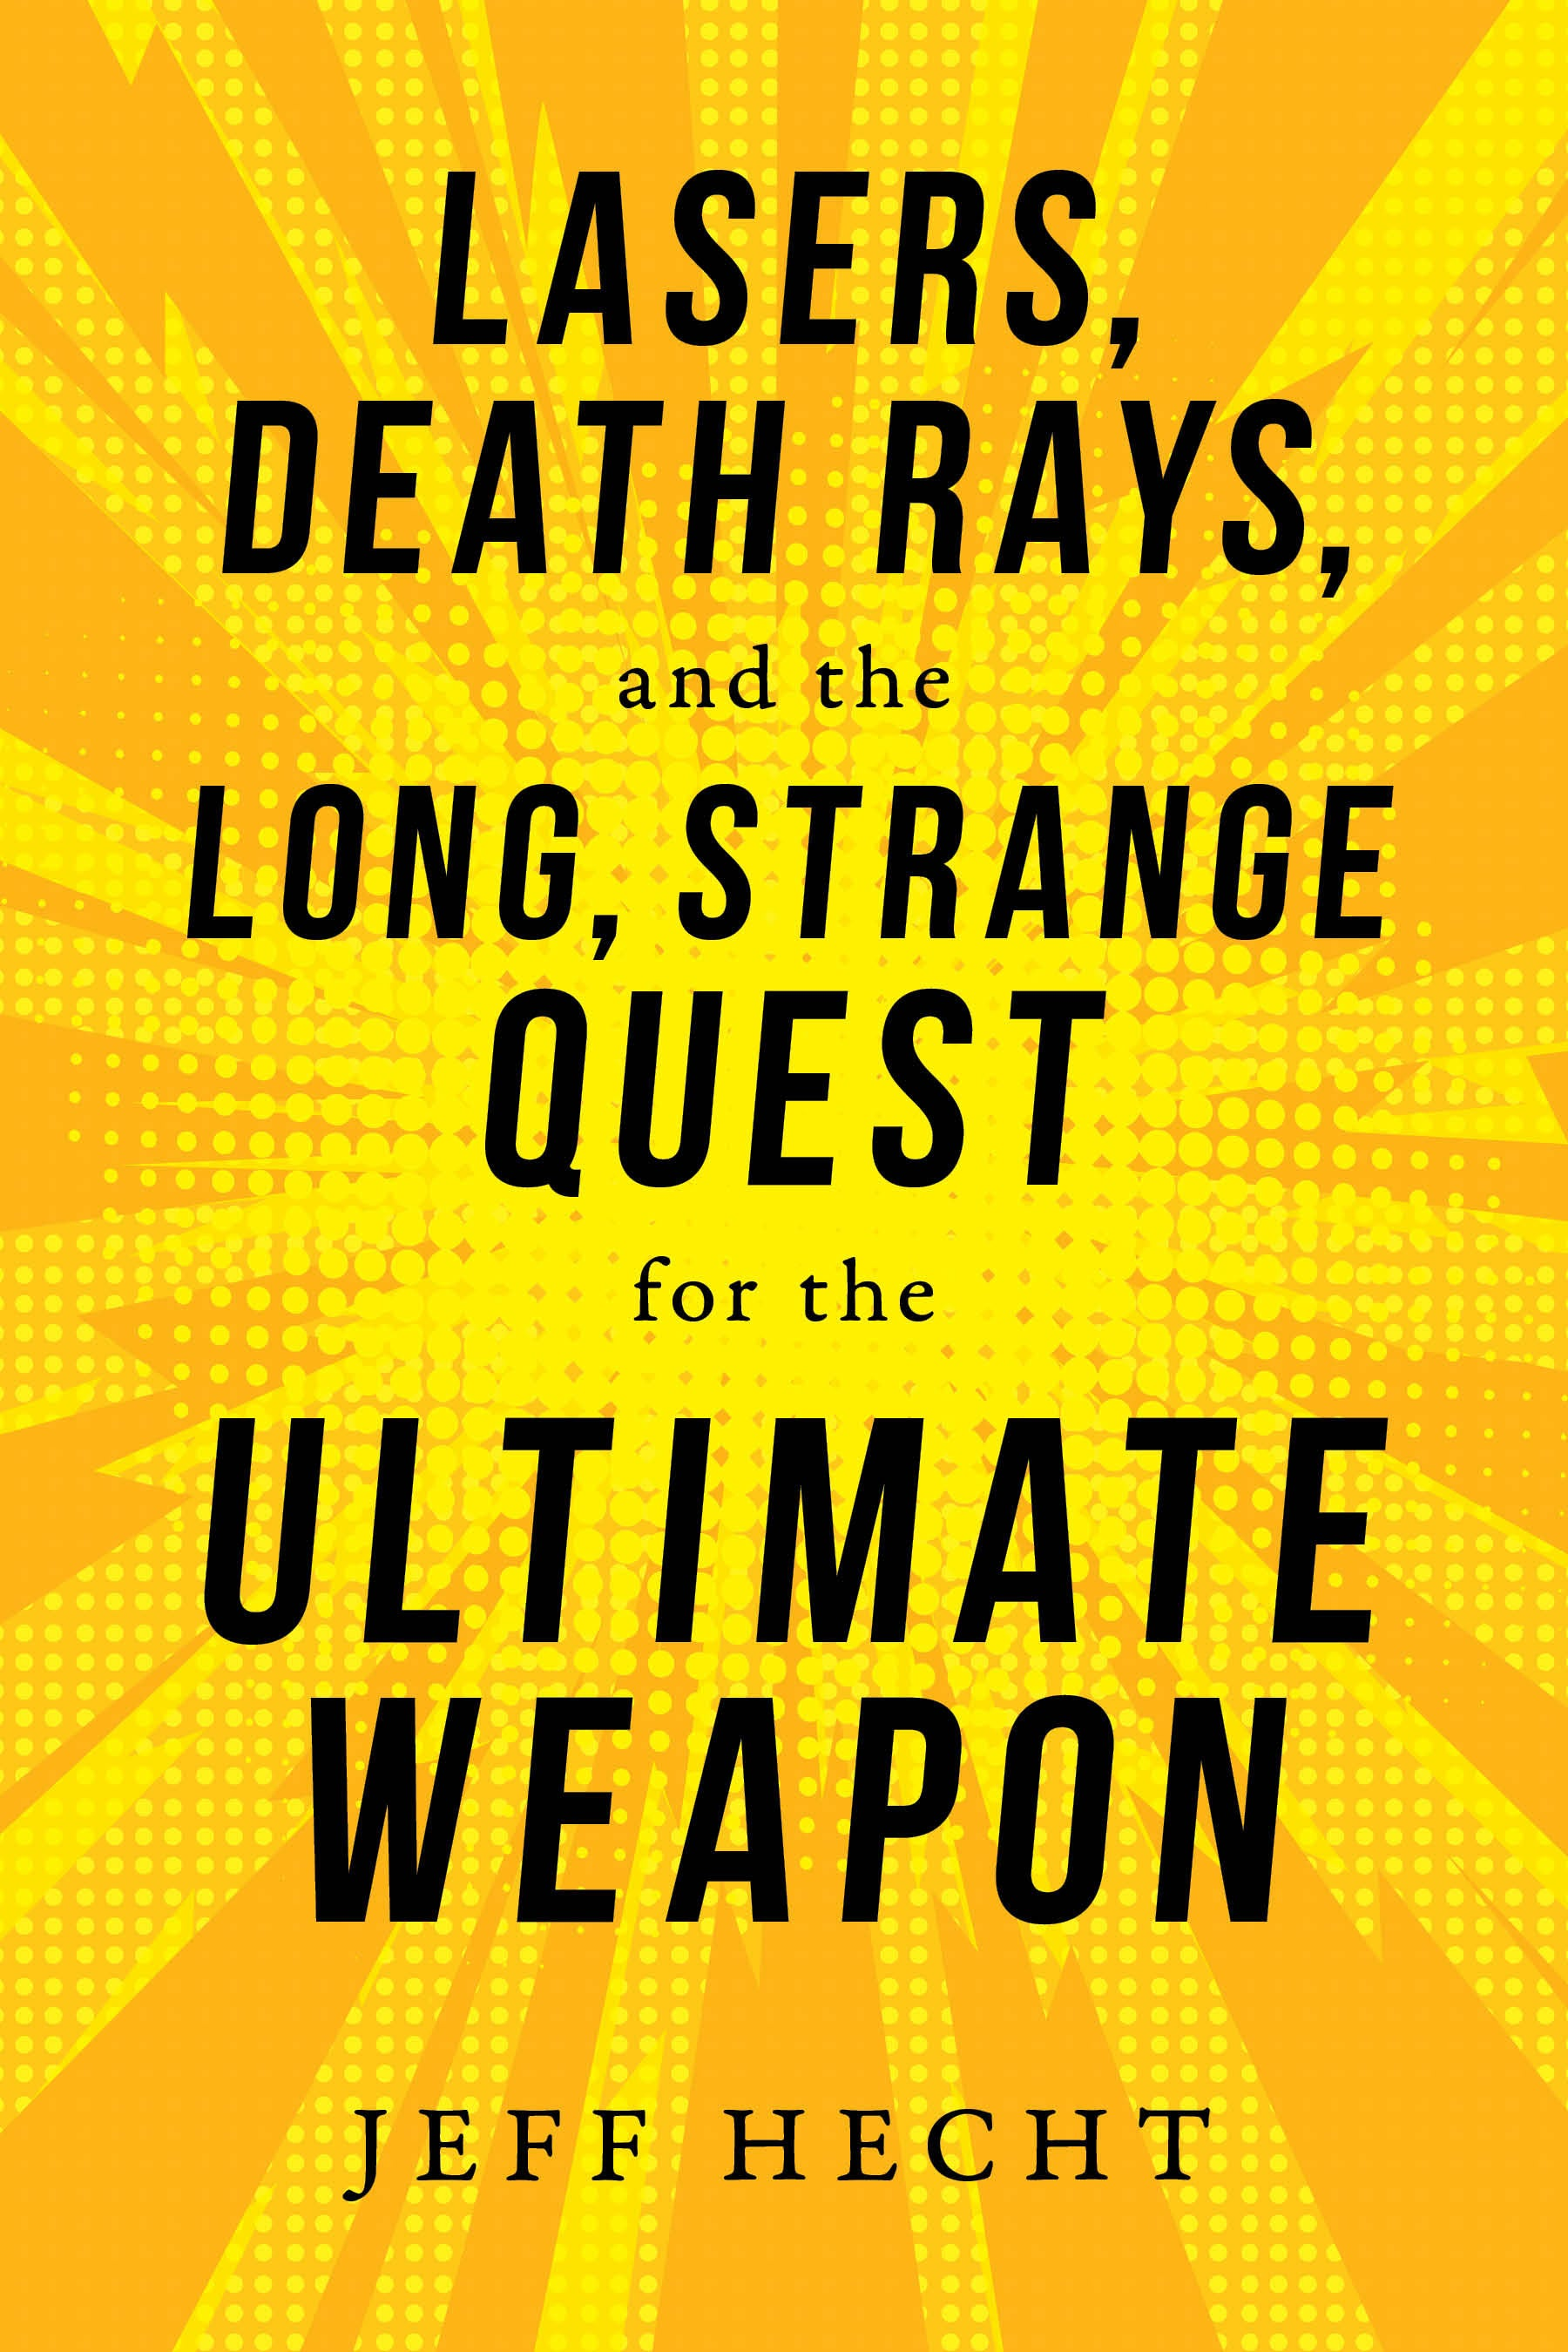 Book cover for Lasers, Death Rays, and the Long, Strange Quest for the Ultimate Weapon.